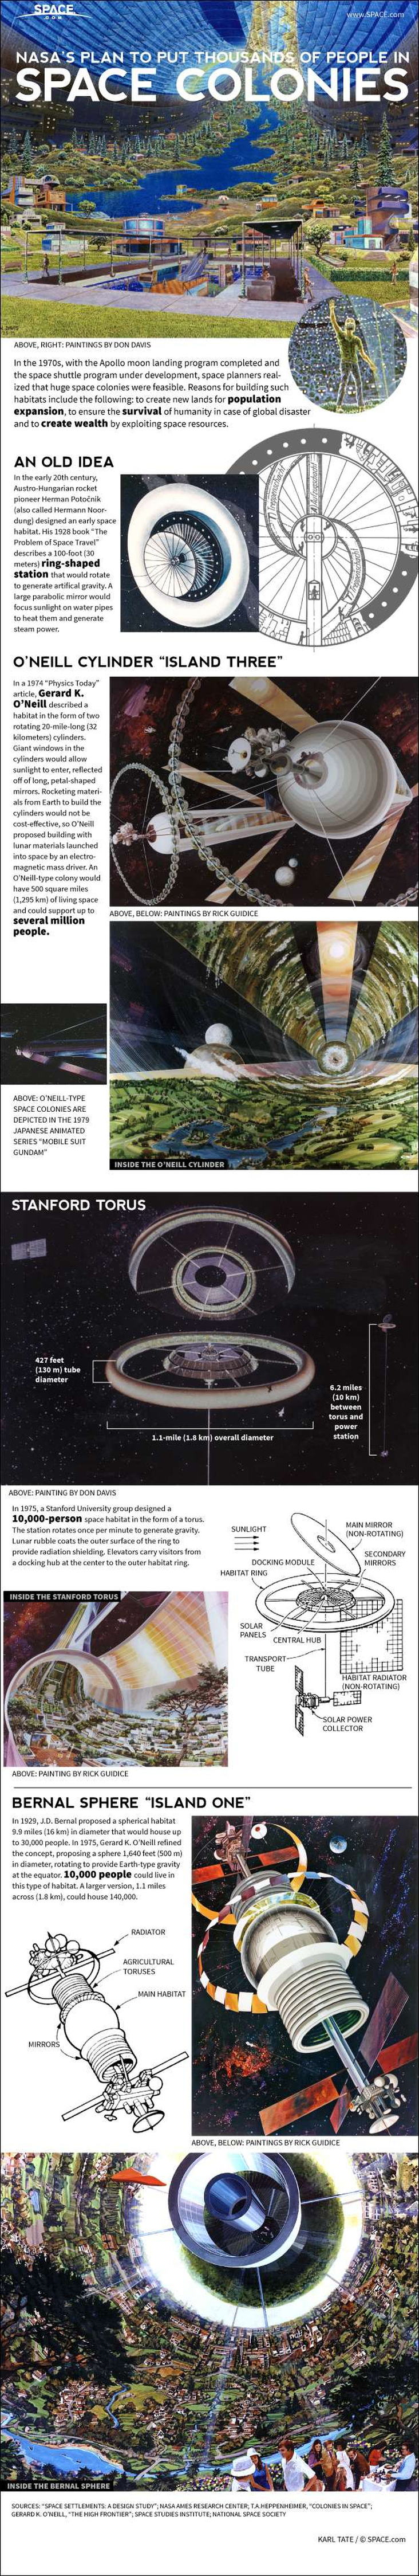 A Village in Orbit: Inside NASA's Space Colony Concepts (Infographic)